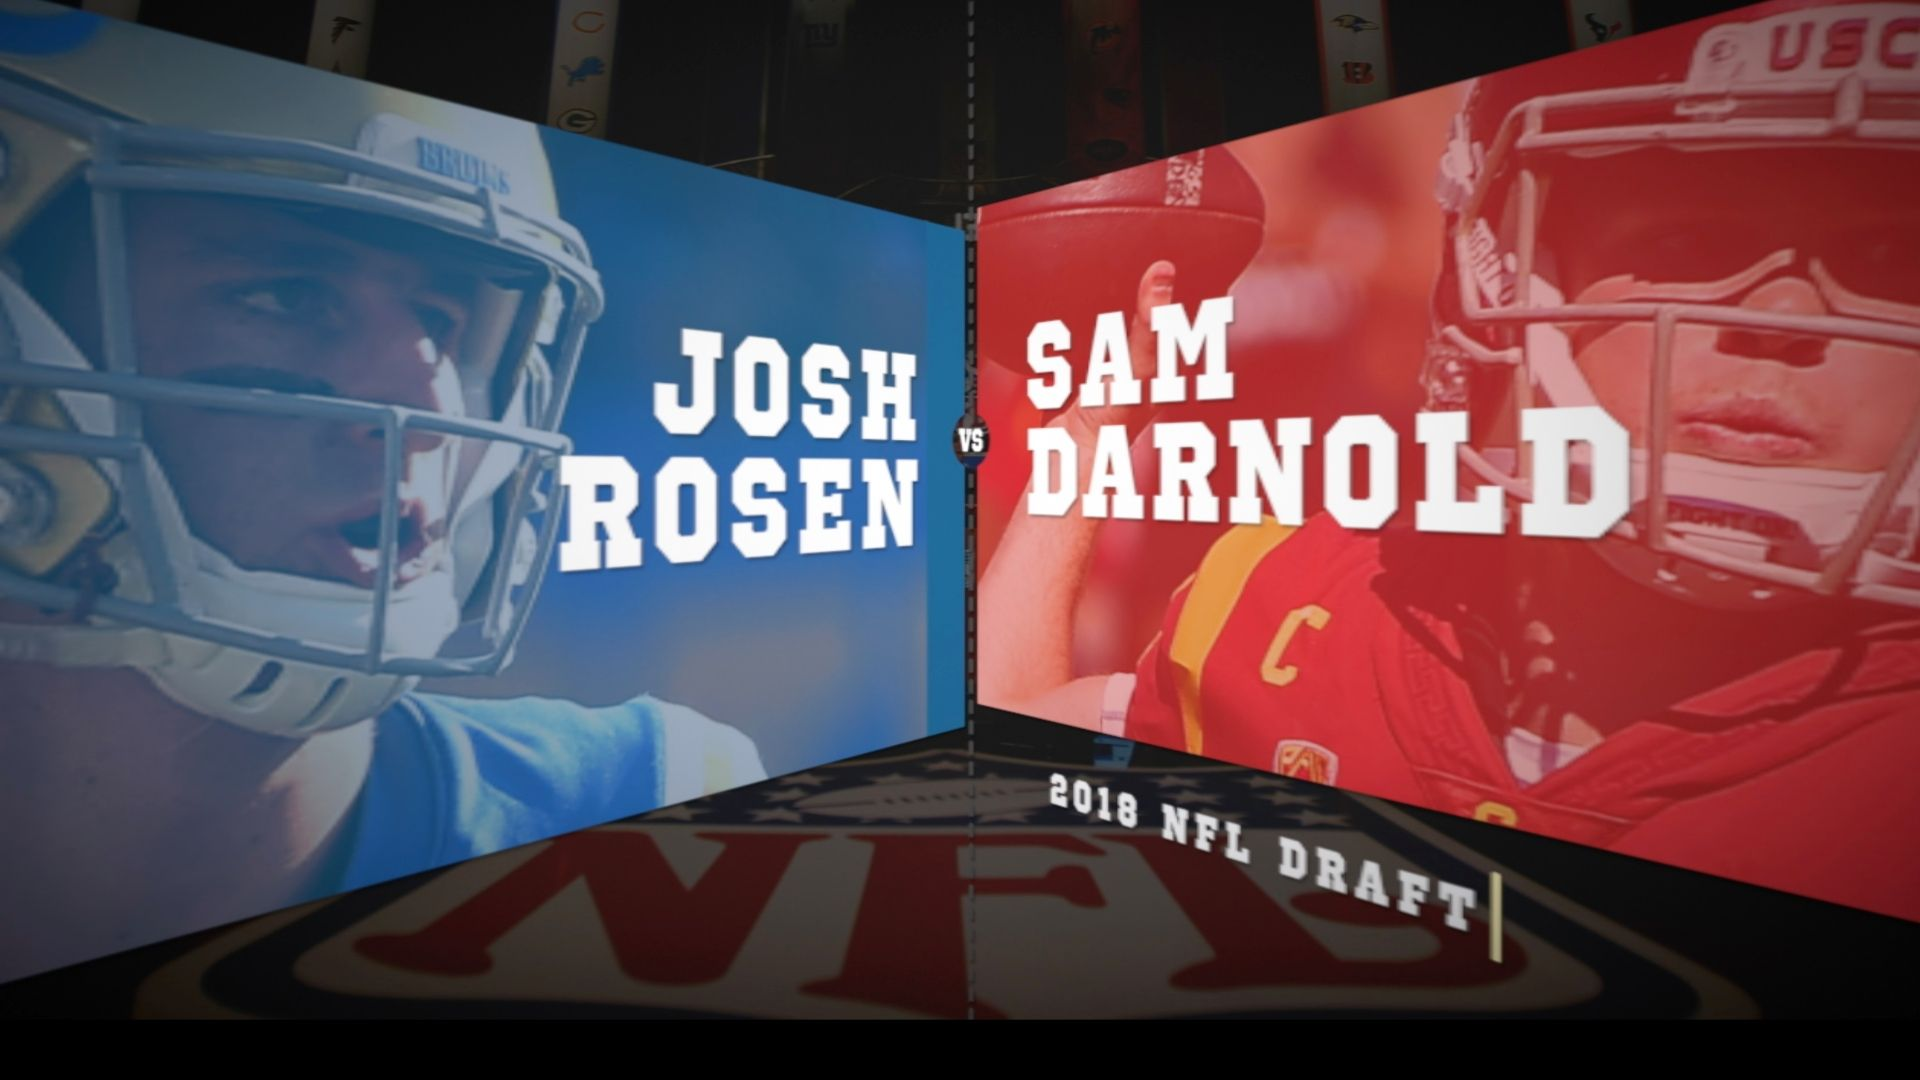 Darnold vs Rosen: Which QB has the higher ceiling?